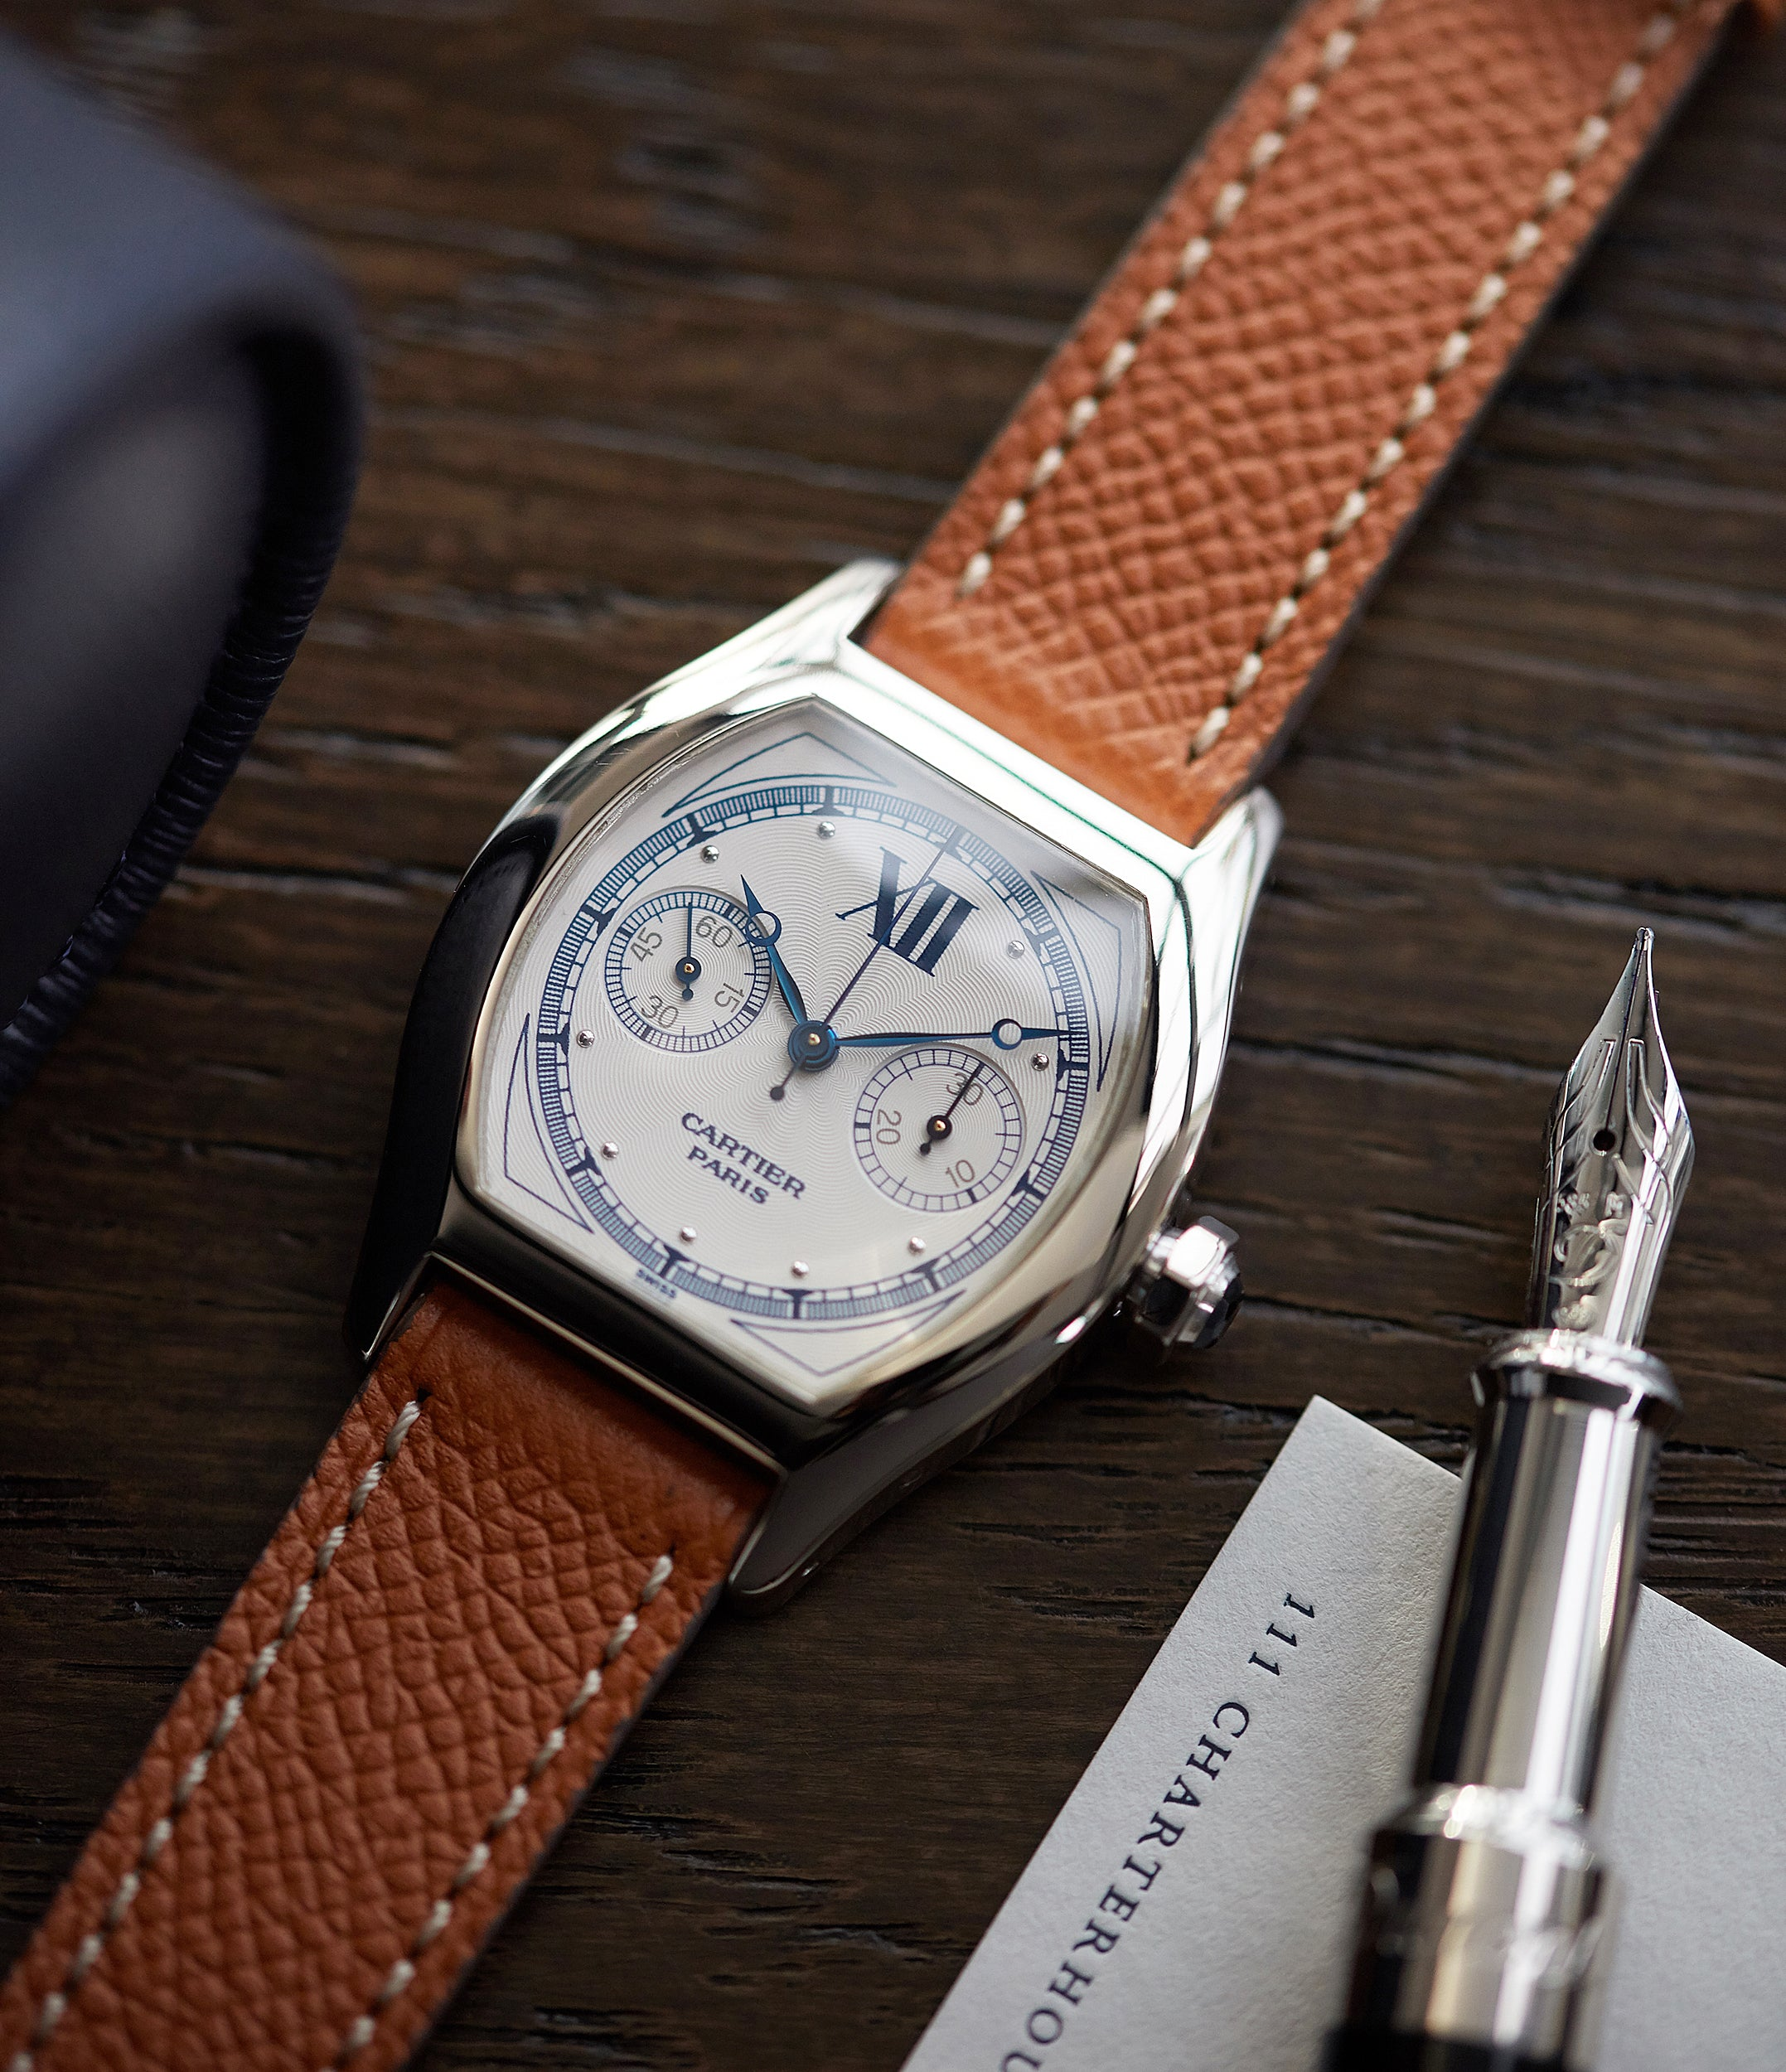 pre-owned Cartier Monopusher 2396 Cal. 045MC THA by independent watchmakers chronograph  for sale at A Collected Man London UK specialist of rare watches